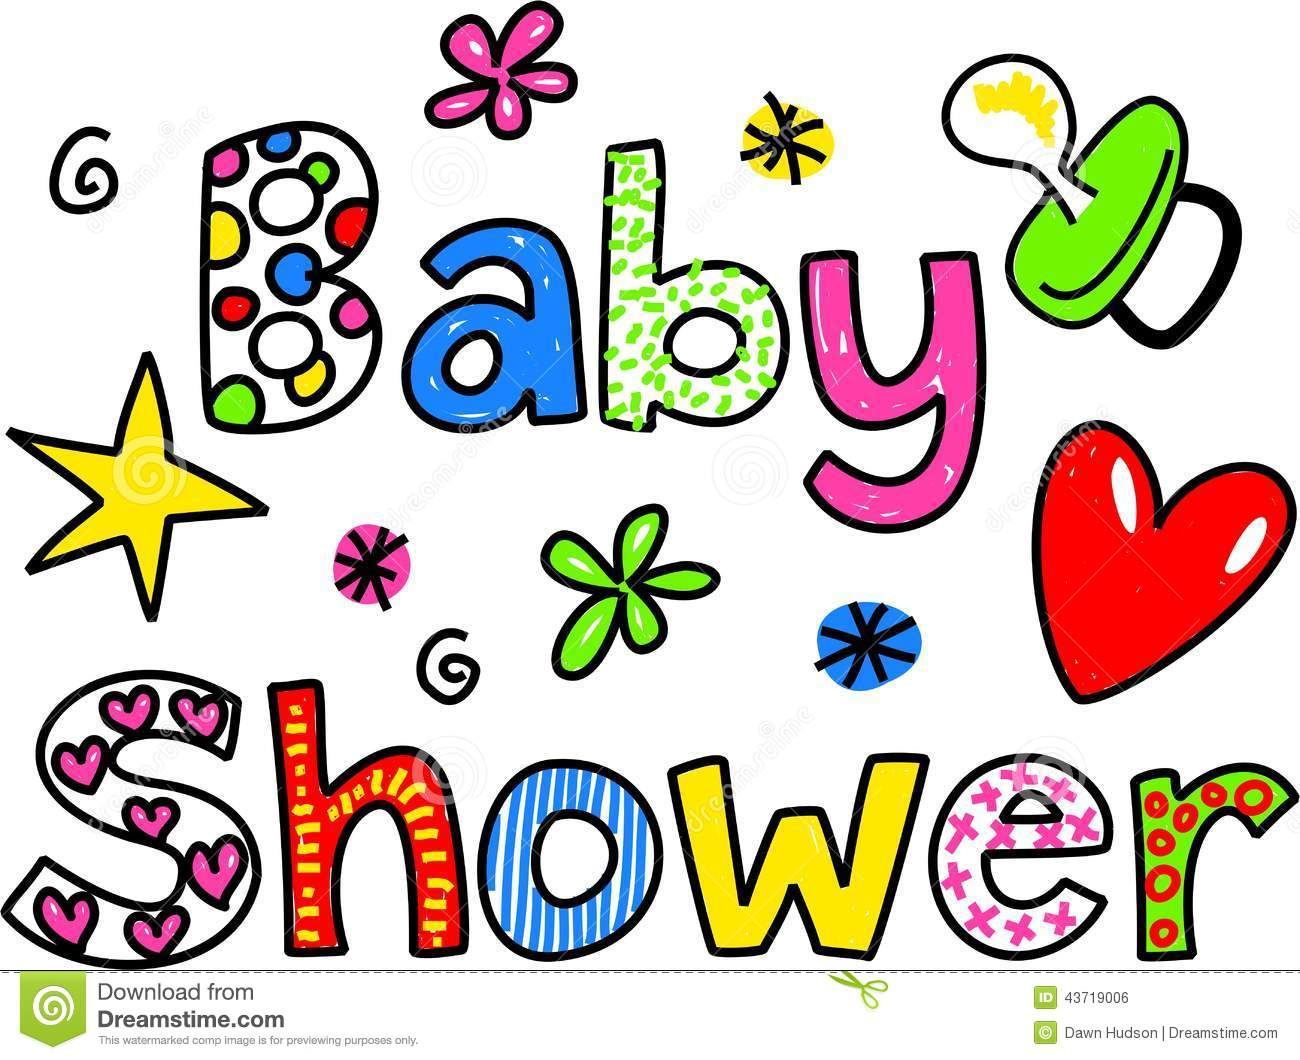 Free Baby Shower Clipart. Baby Shower Ca-Free Baby Shower Clipart. Baby Shower Cartoon Text .-15